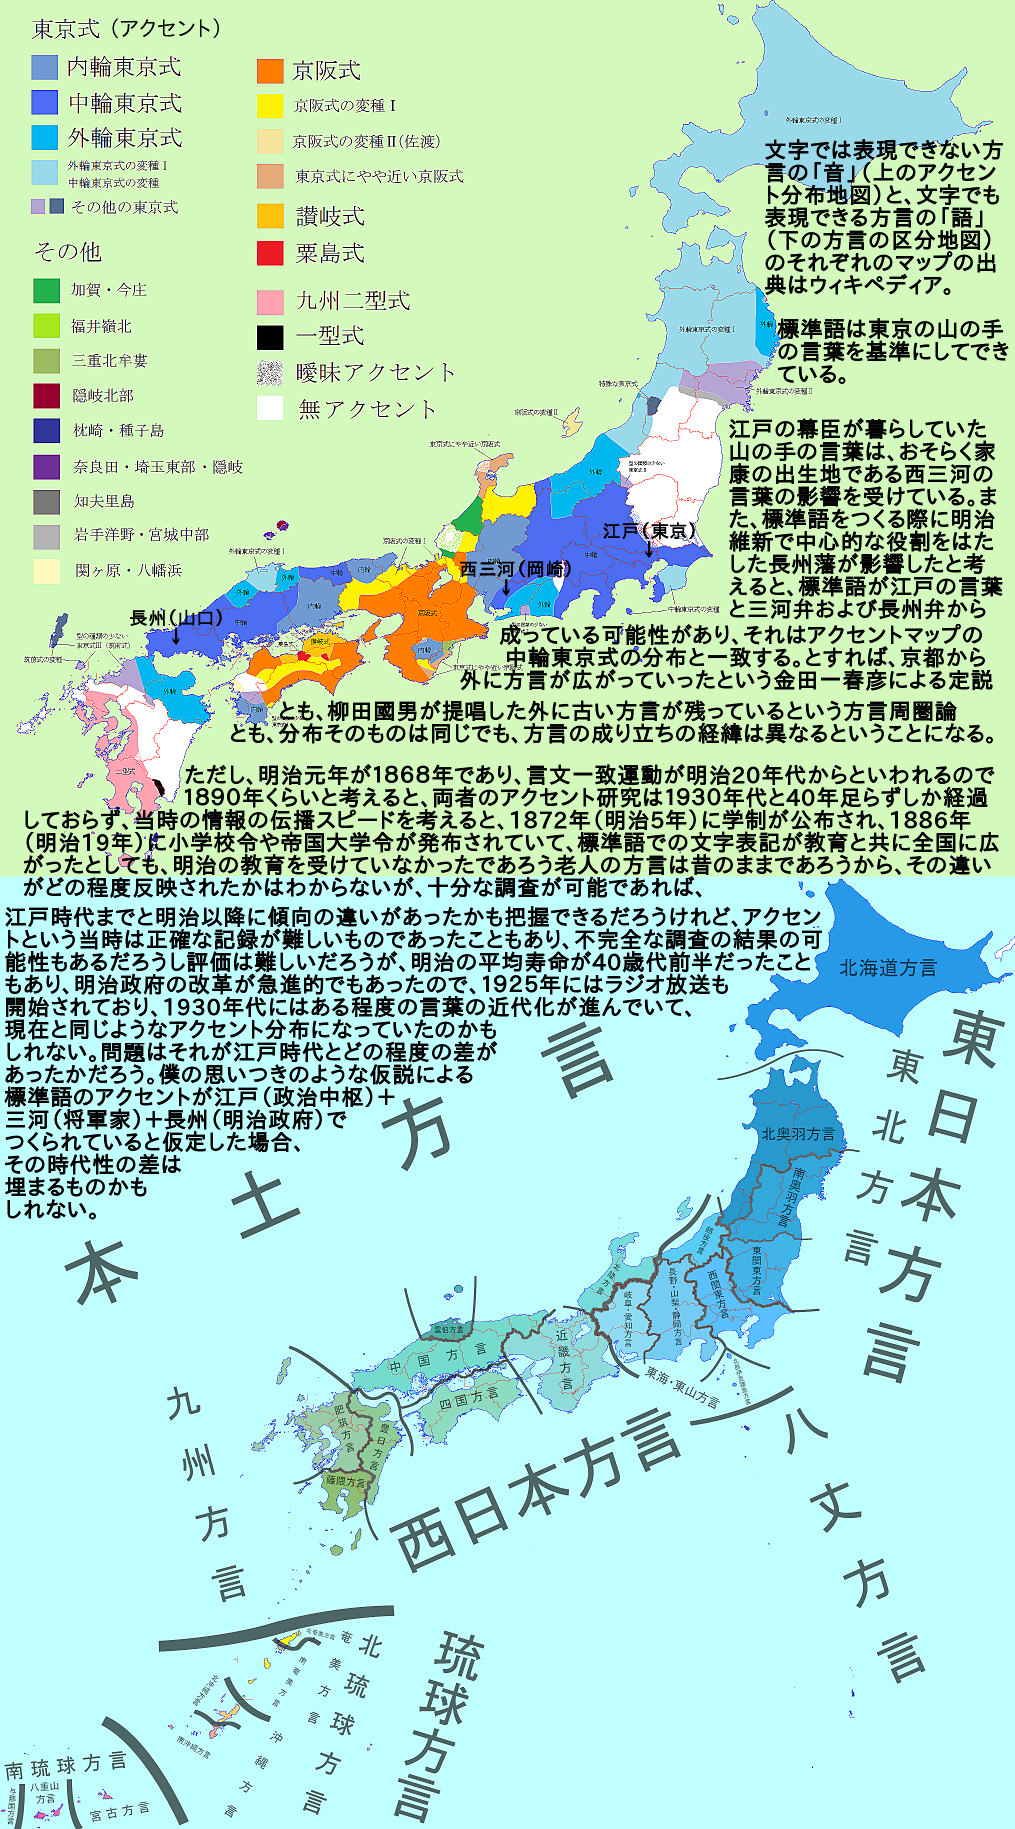 Japanese_dialects_map_1.jpg